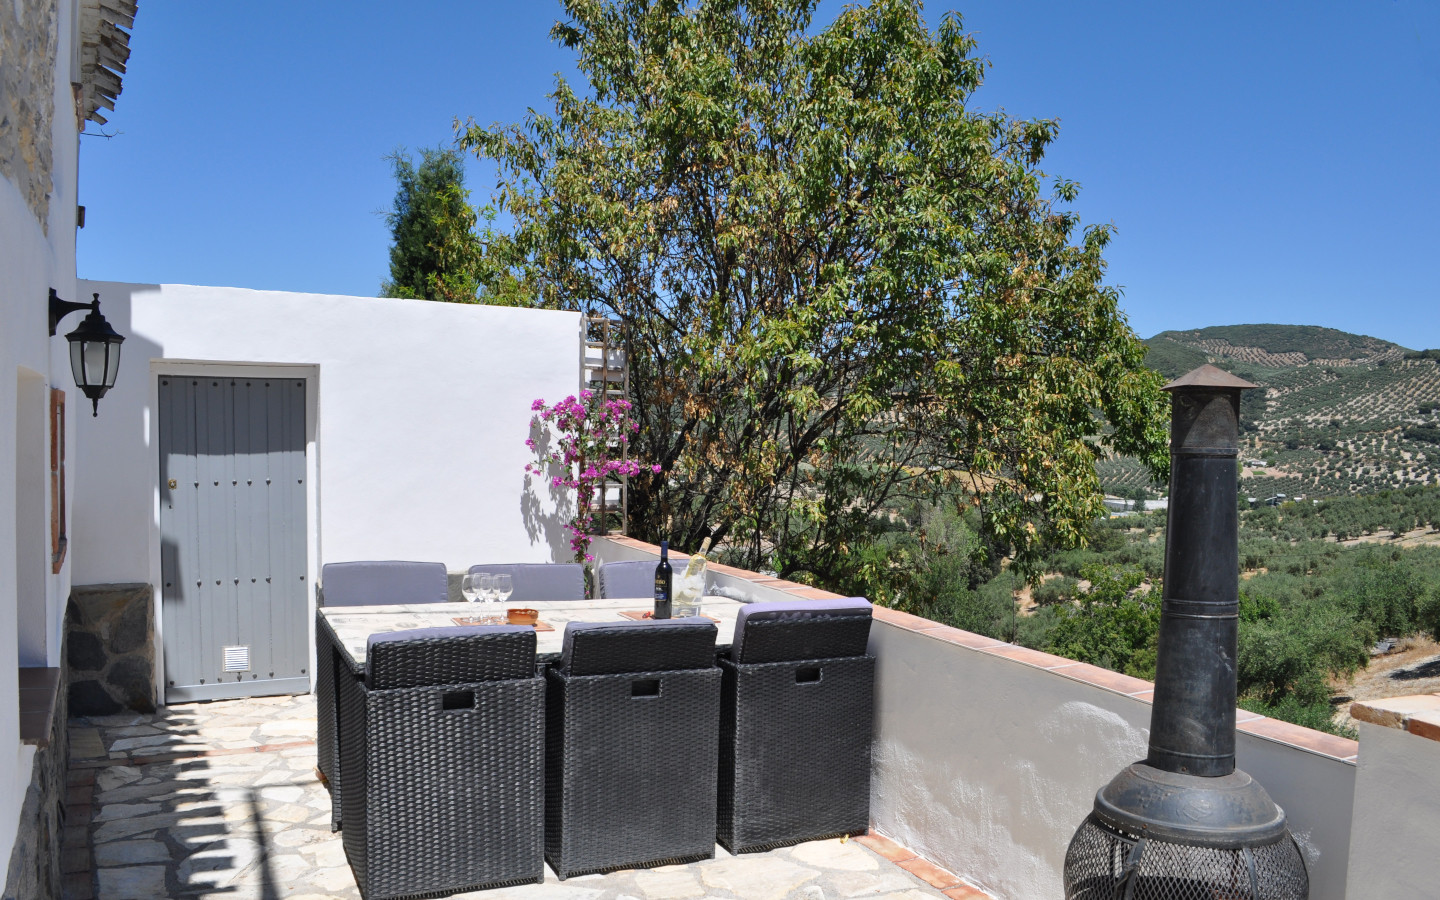 outside_seating_4_pequena_holiday_accomodation_Montefrio_Granada